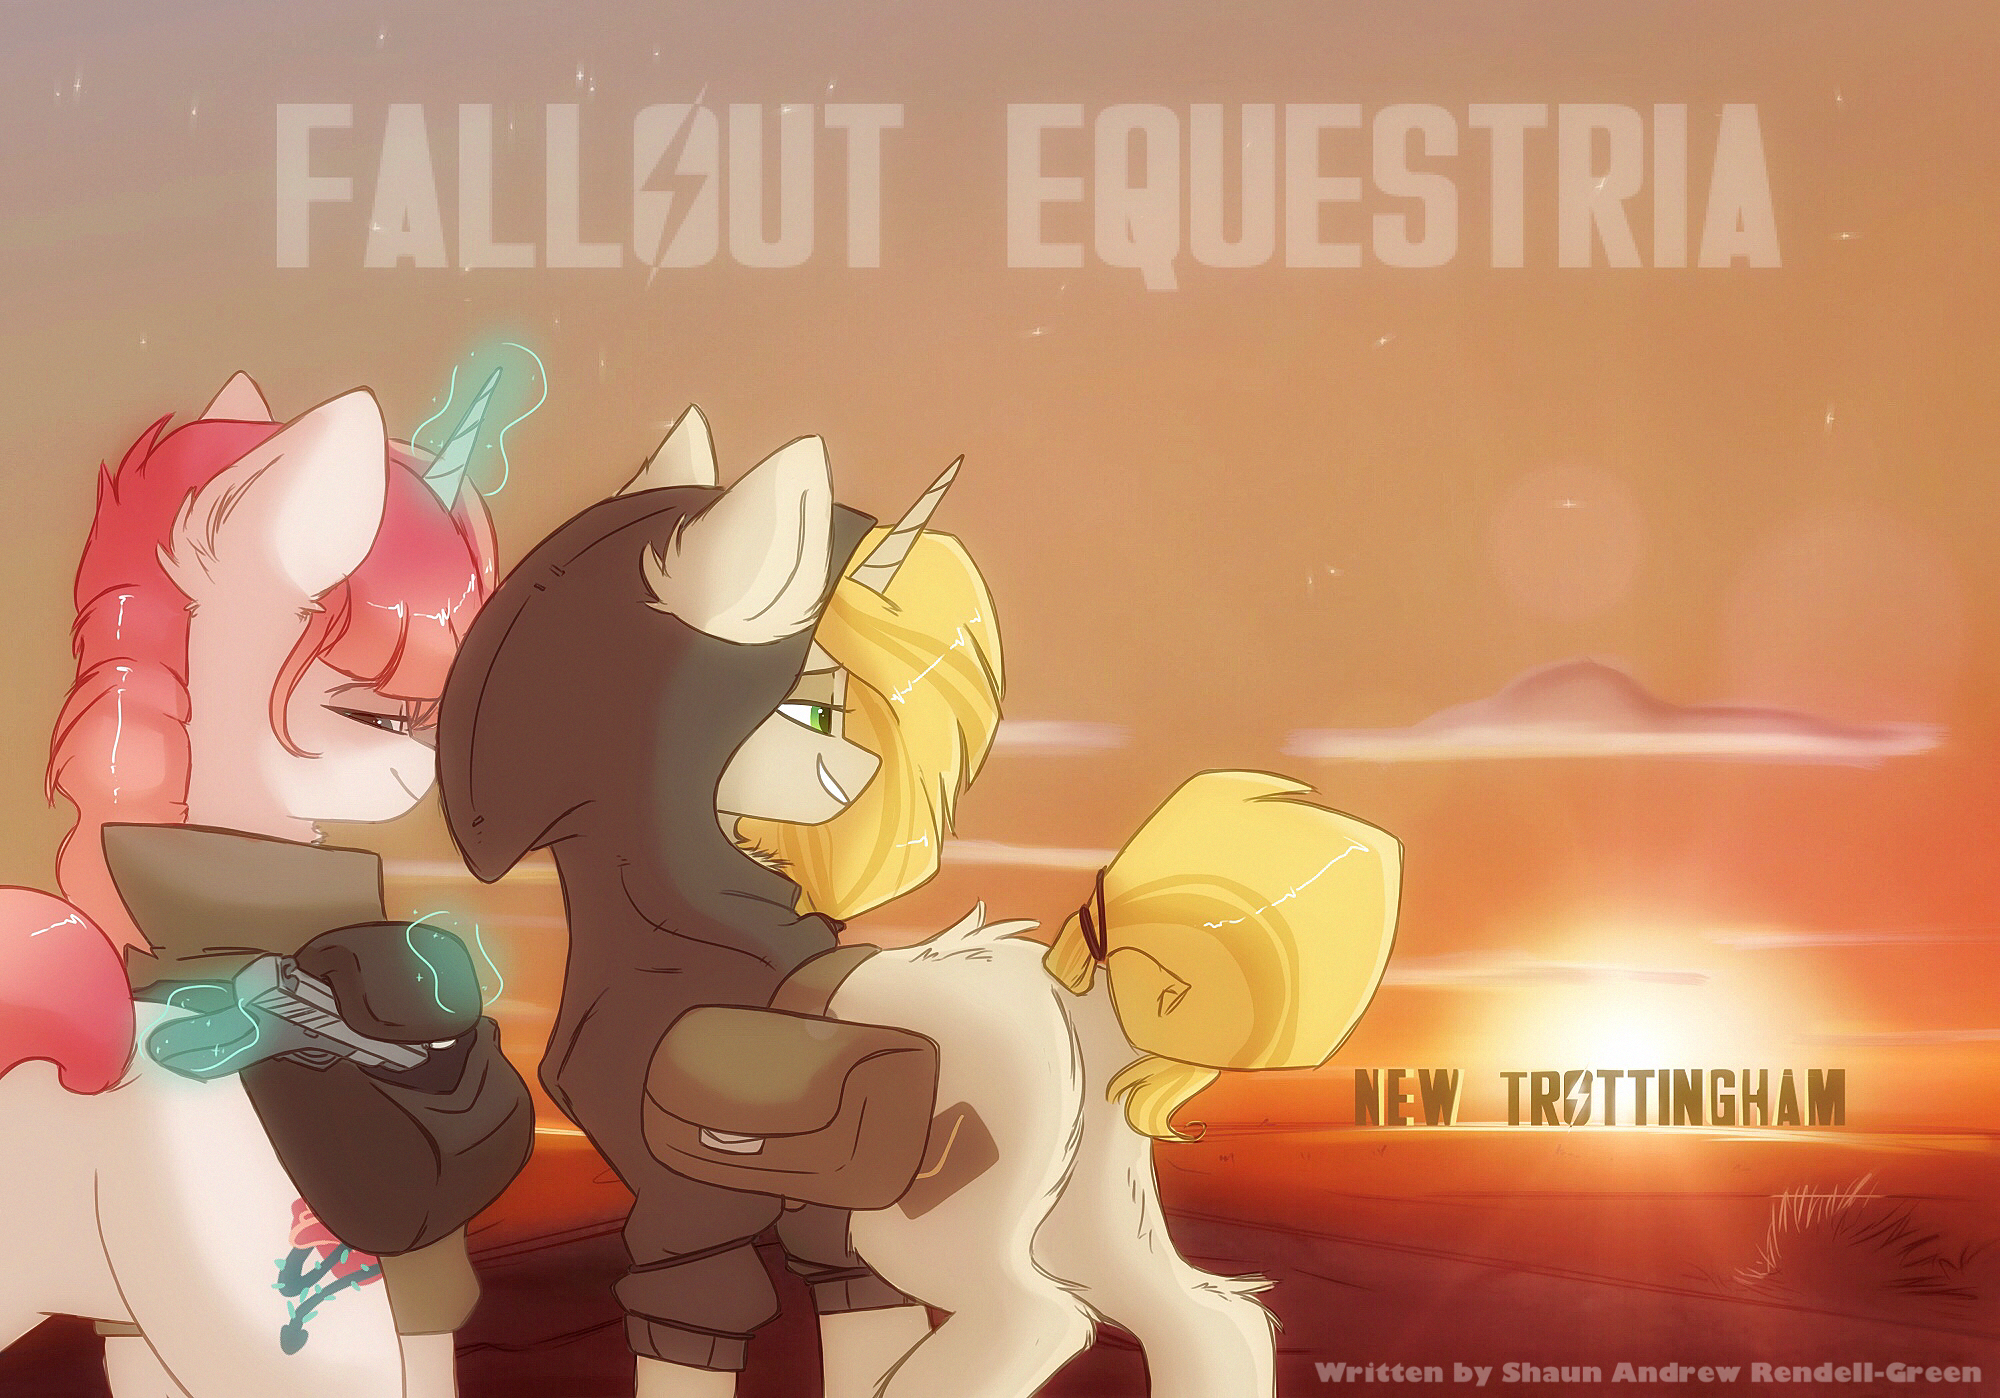 Fallout Equestria - New Trottingham by HiccupsDoesArt